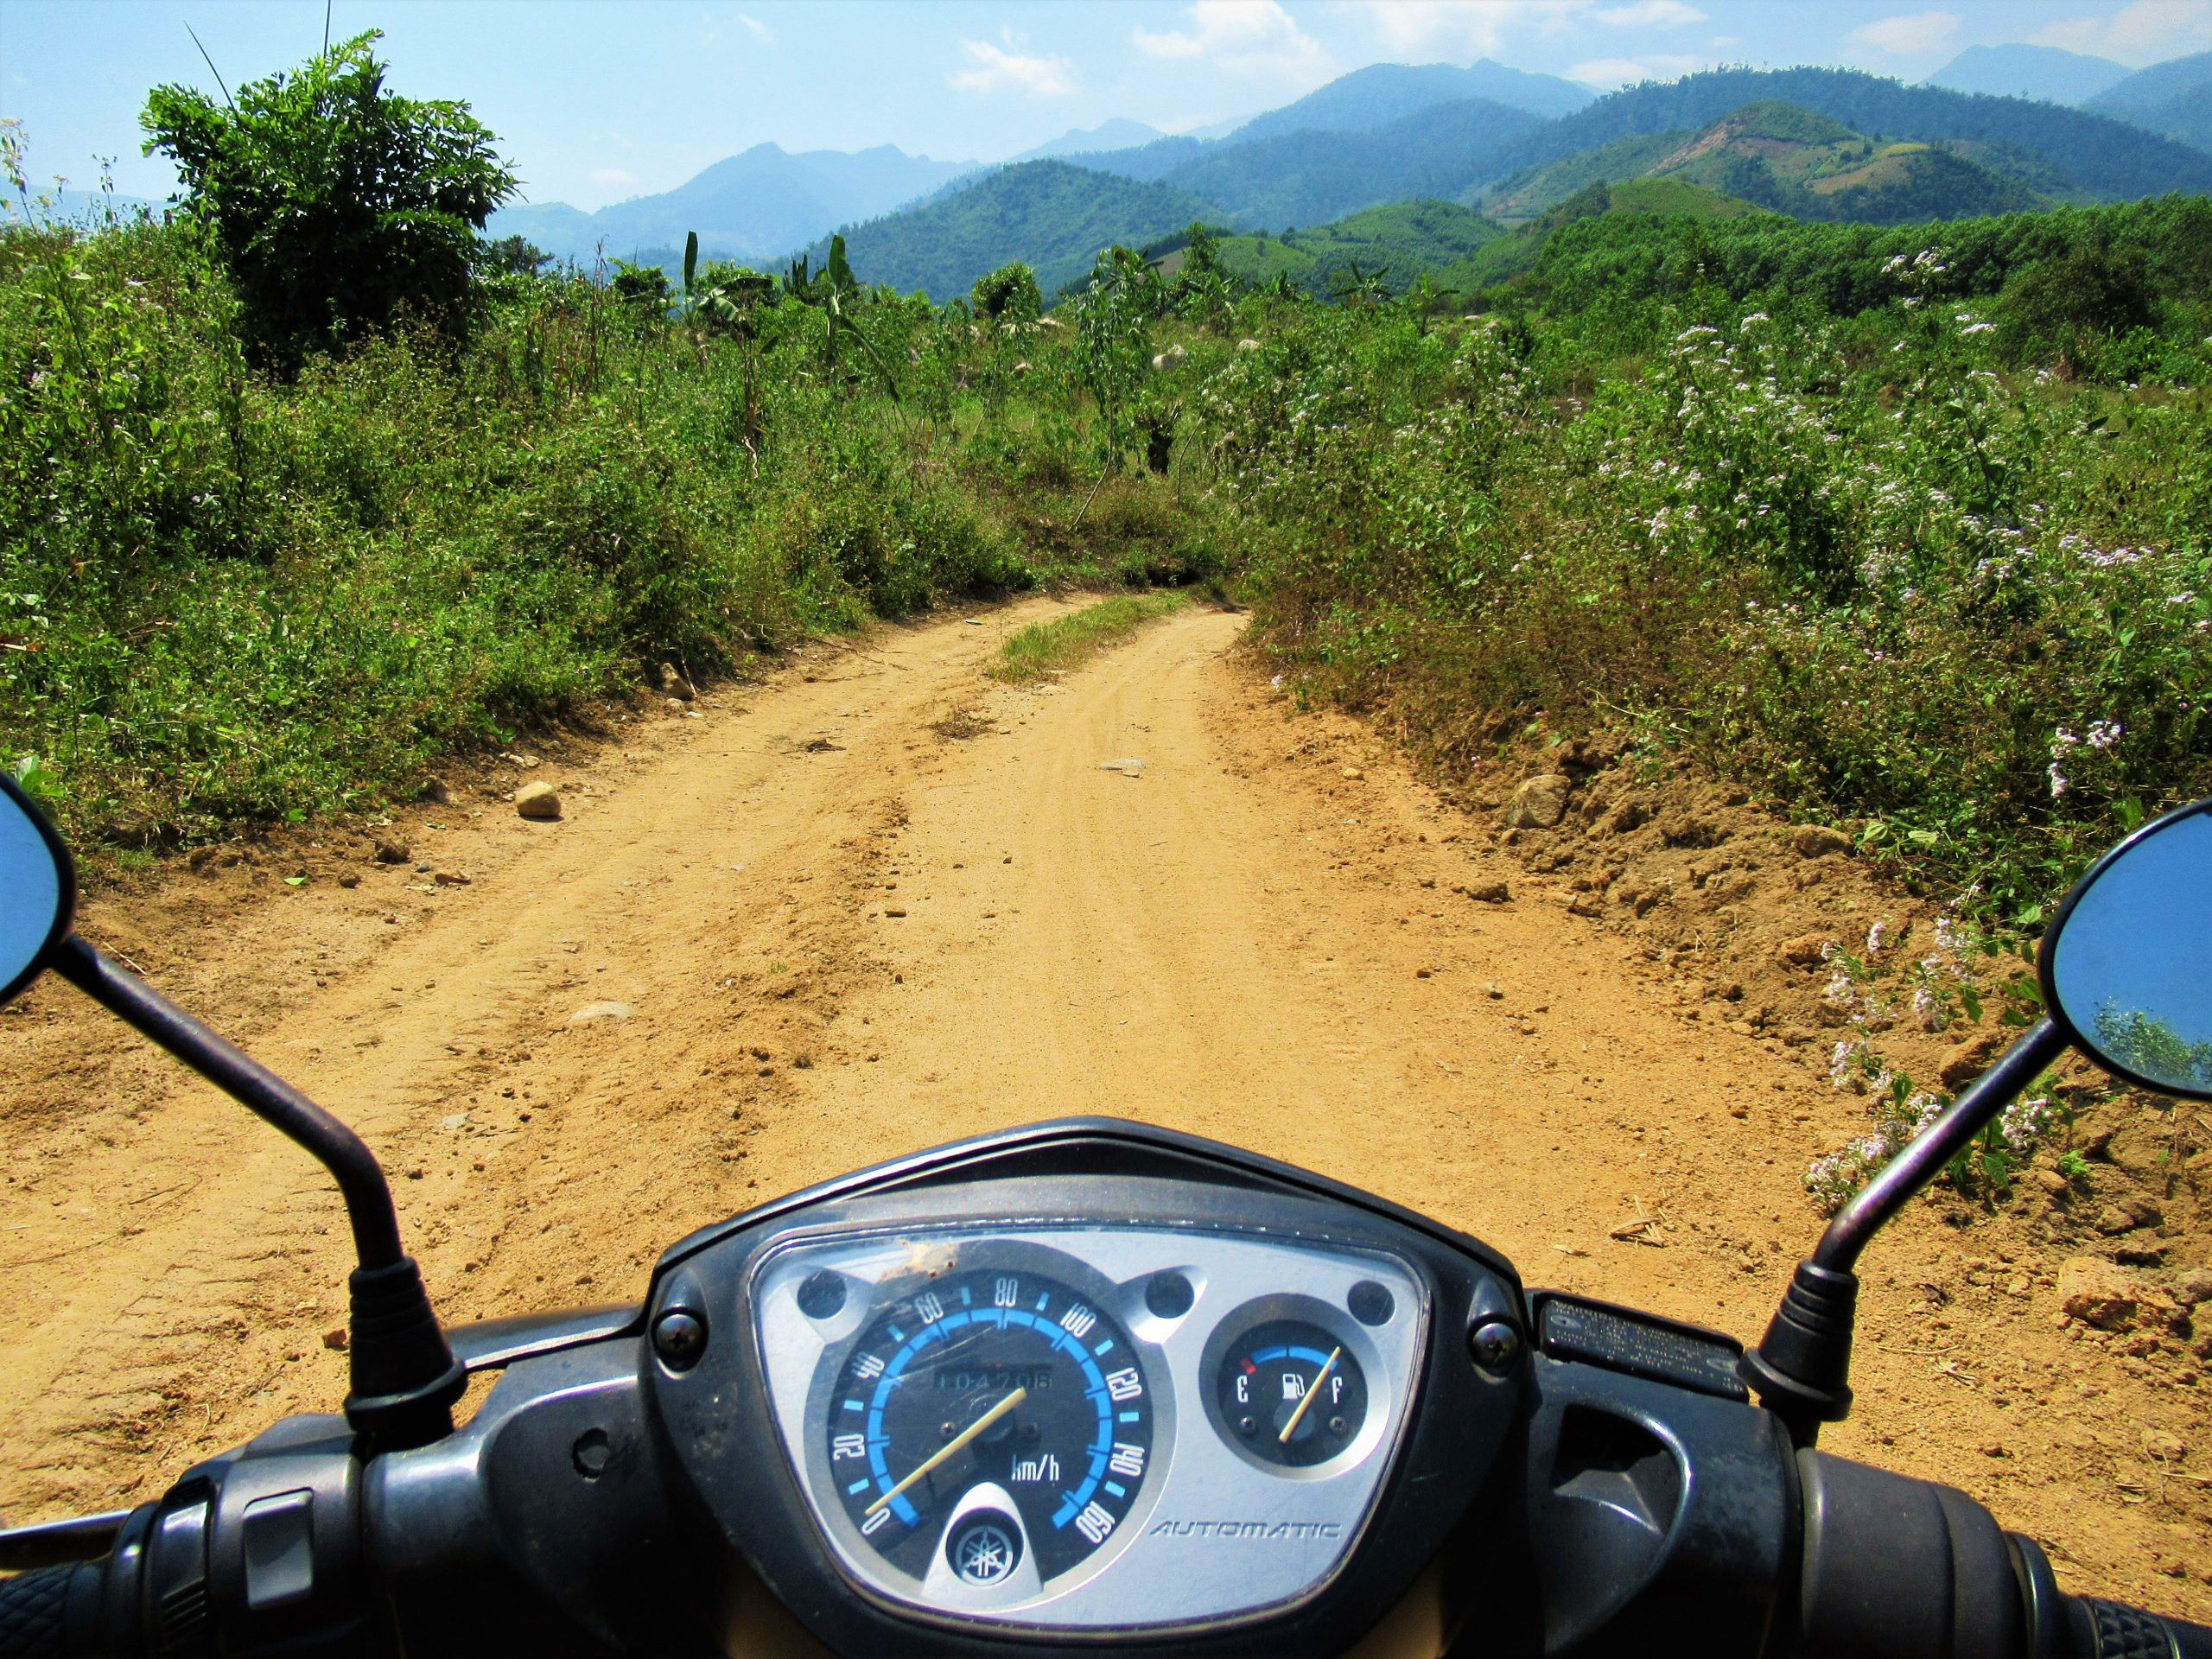 Dirt roads towards the Khanh Vinh Tributaries to find wild campsites, south-central Vietnam